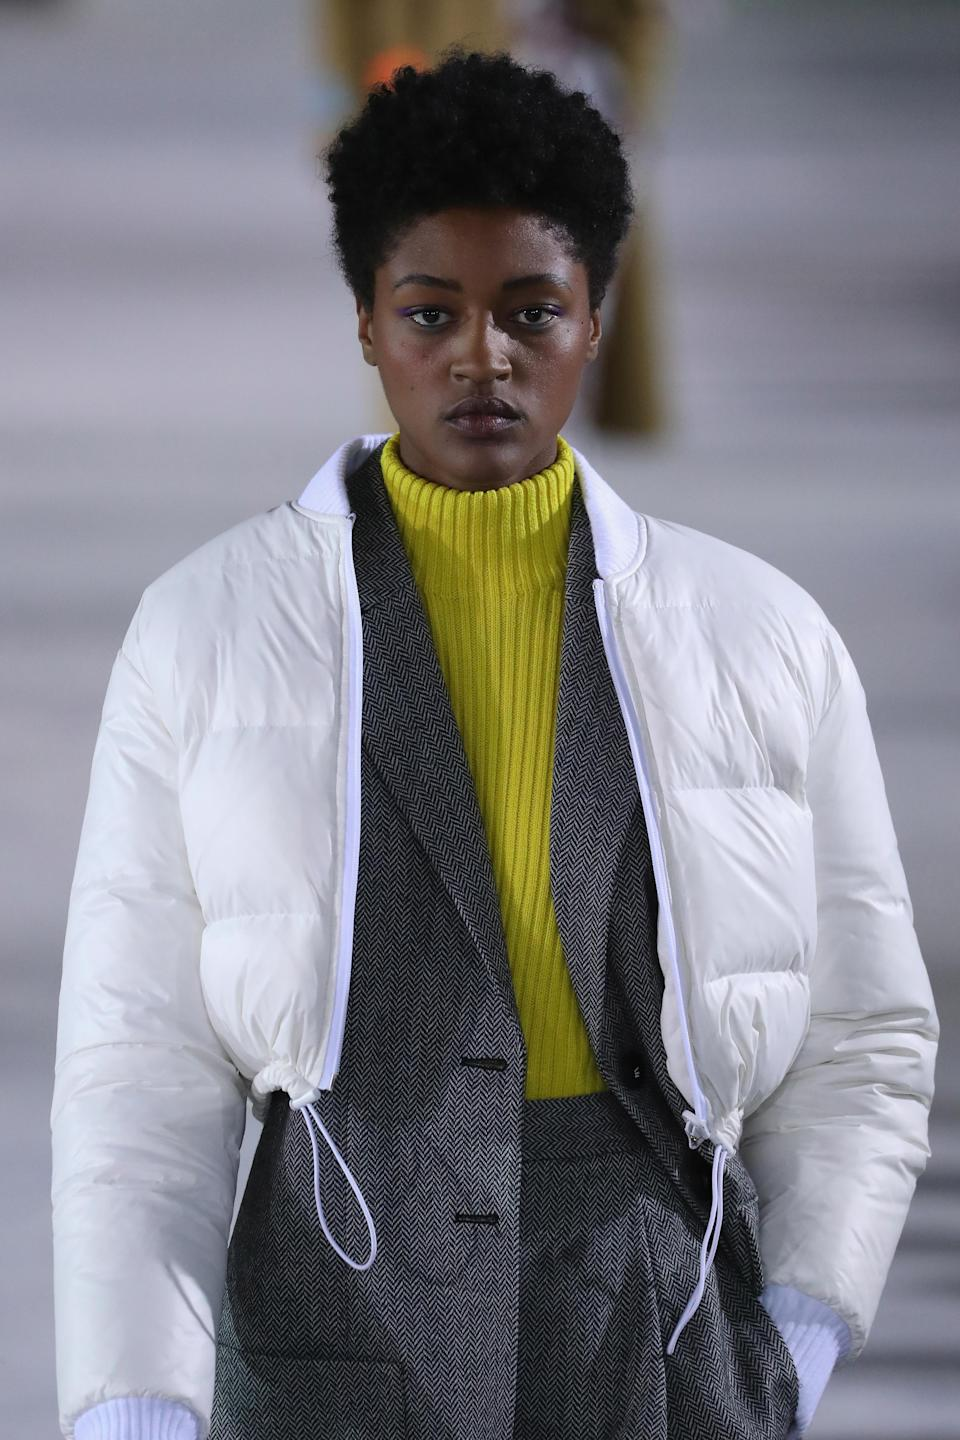 <p>The subtle texture in this minature Afro adds flair. (Photo: Getty Images) </p>